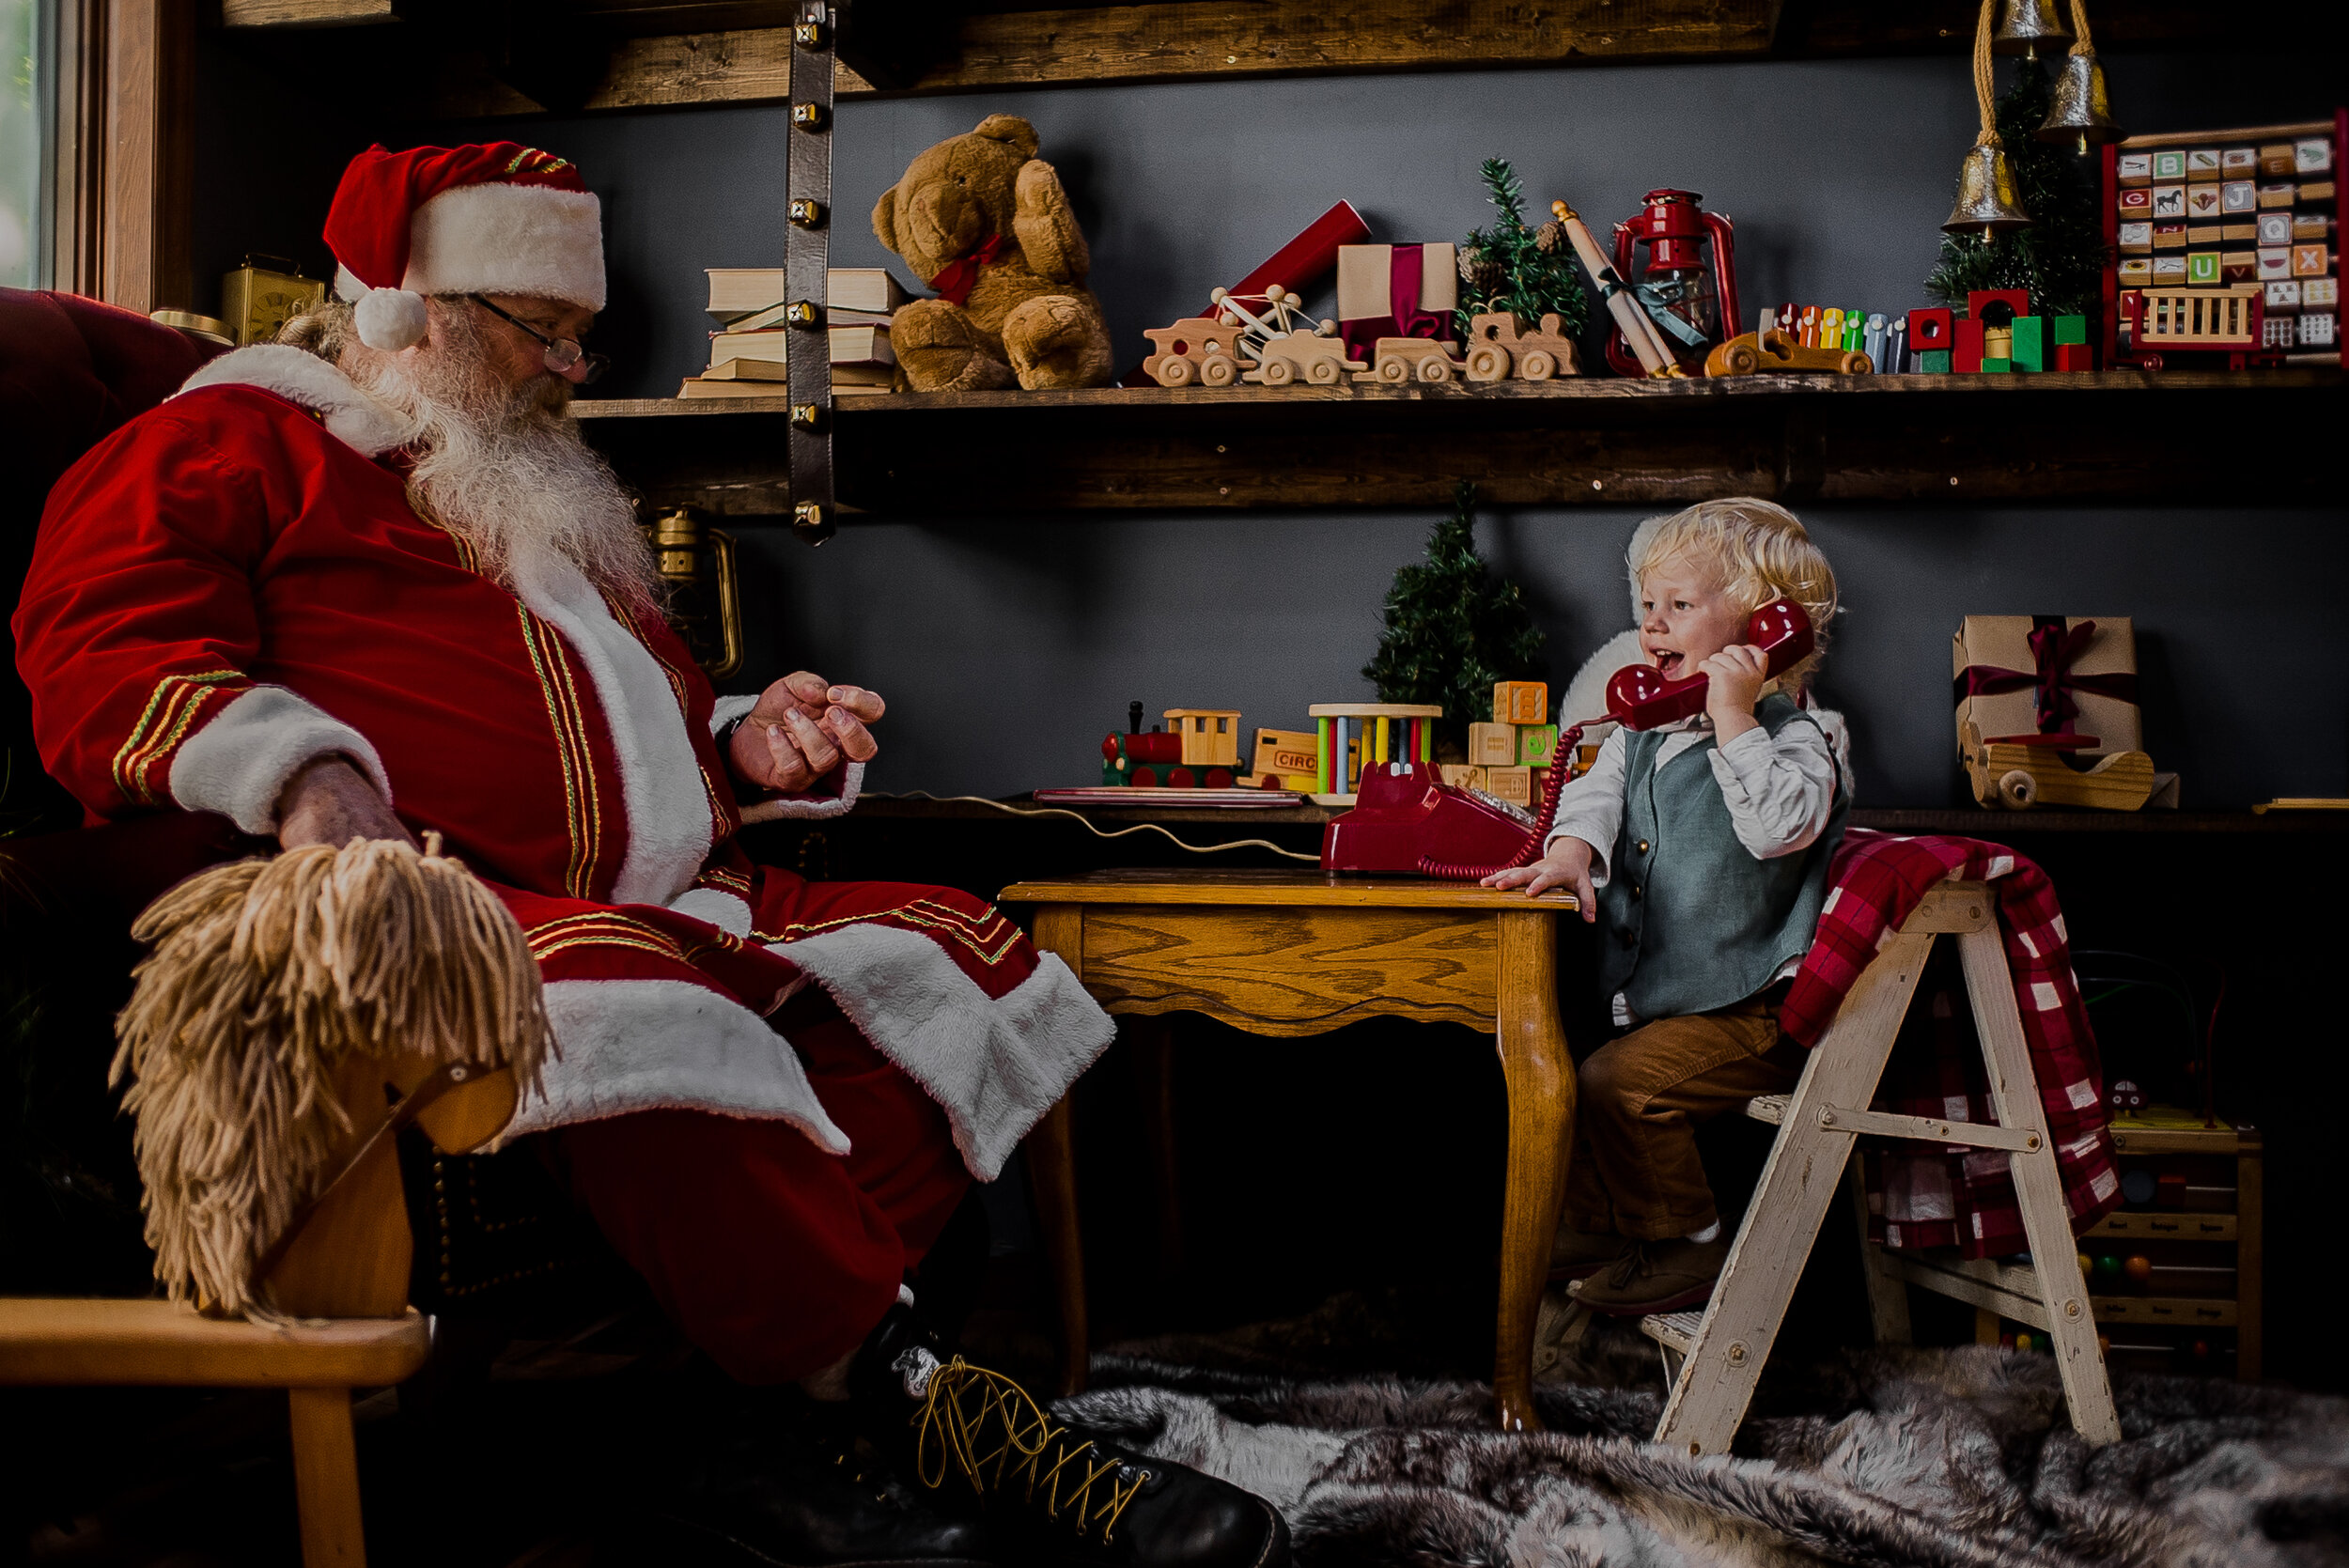 boone west jefferson ashe county santa claus photography professional